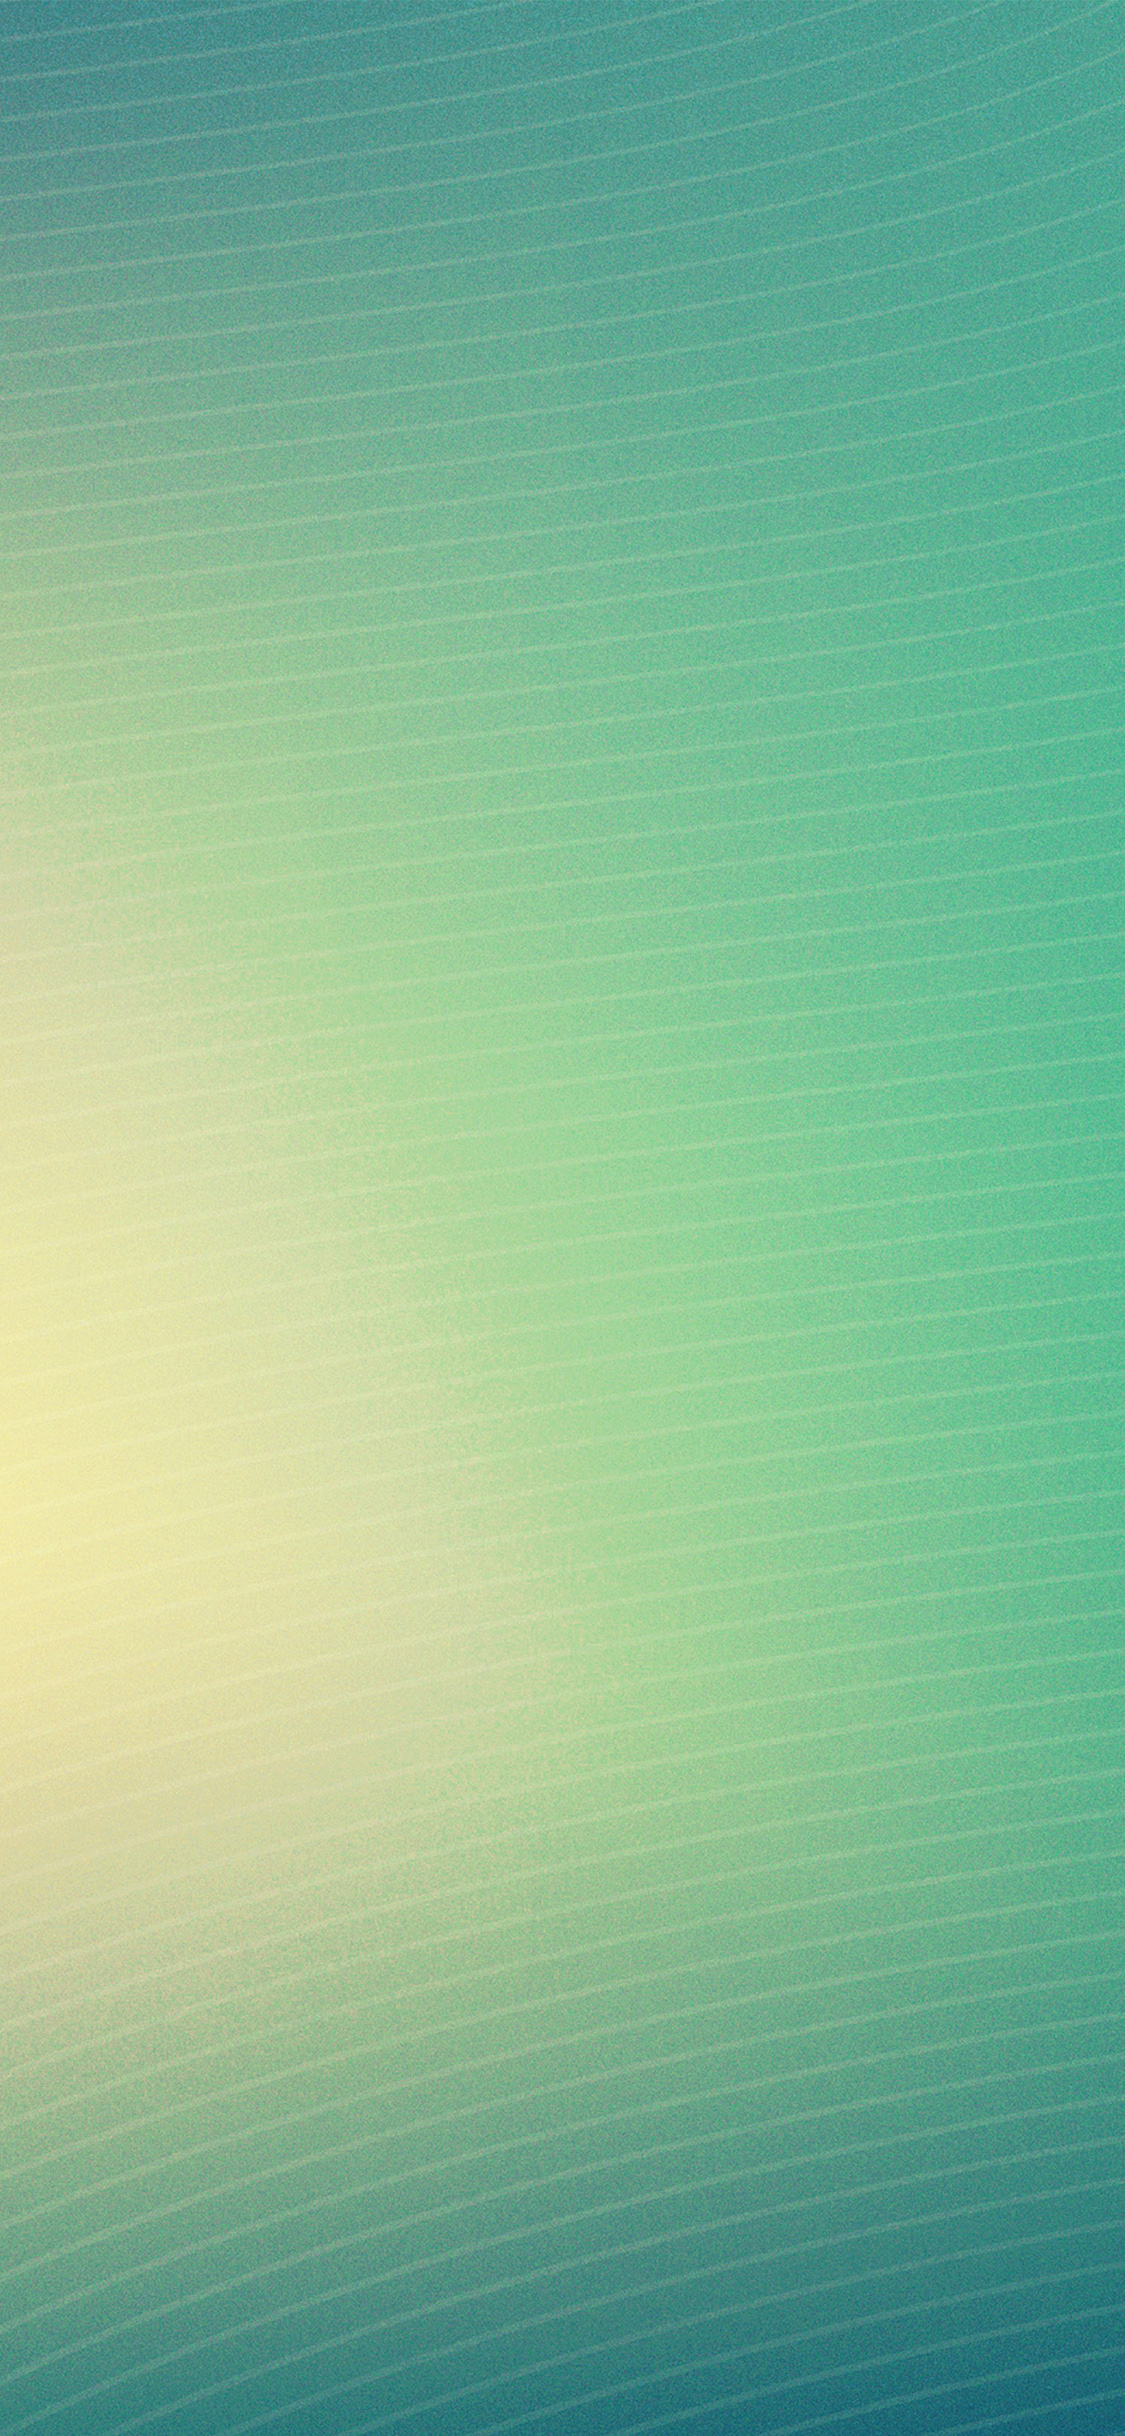 iPhonexpapers.com-Apple-iPhone-wallpaper-vx90-curve-blue-green-pattern-background